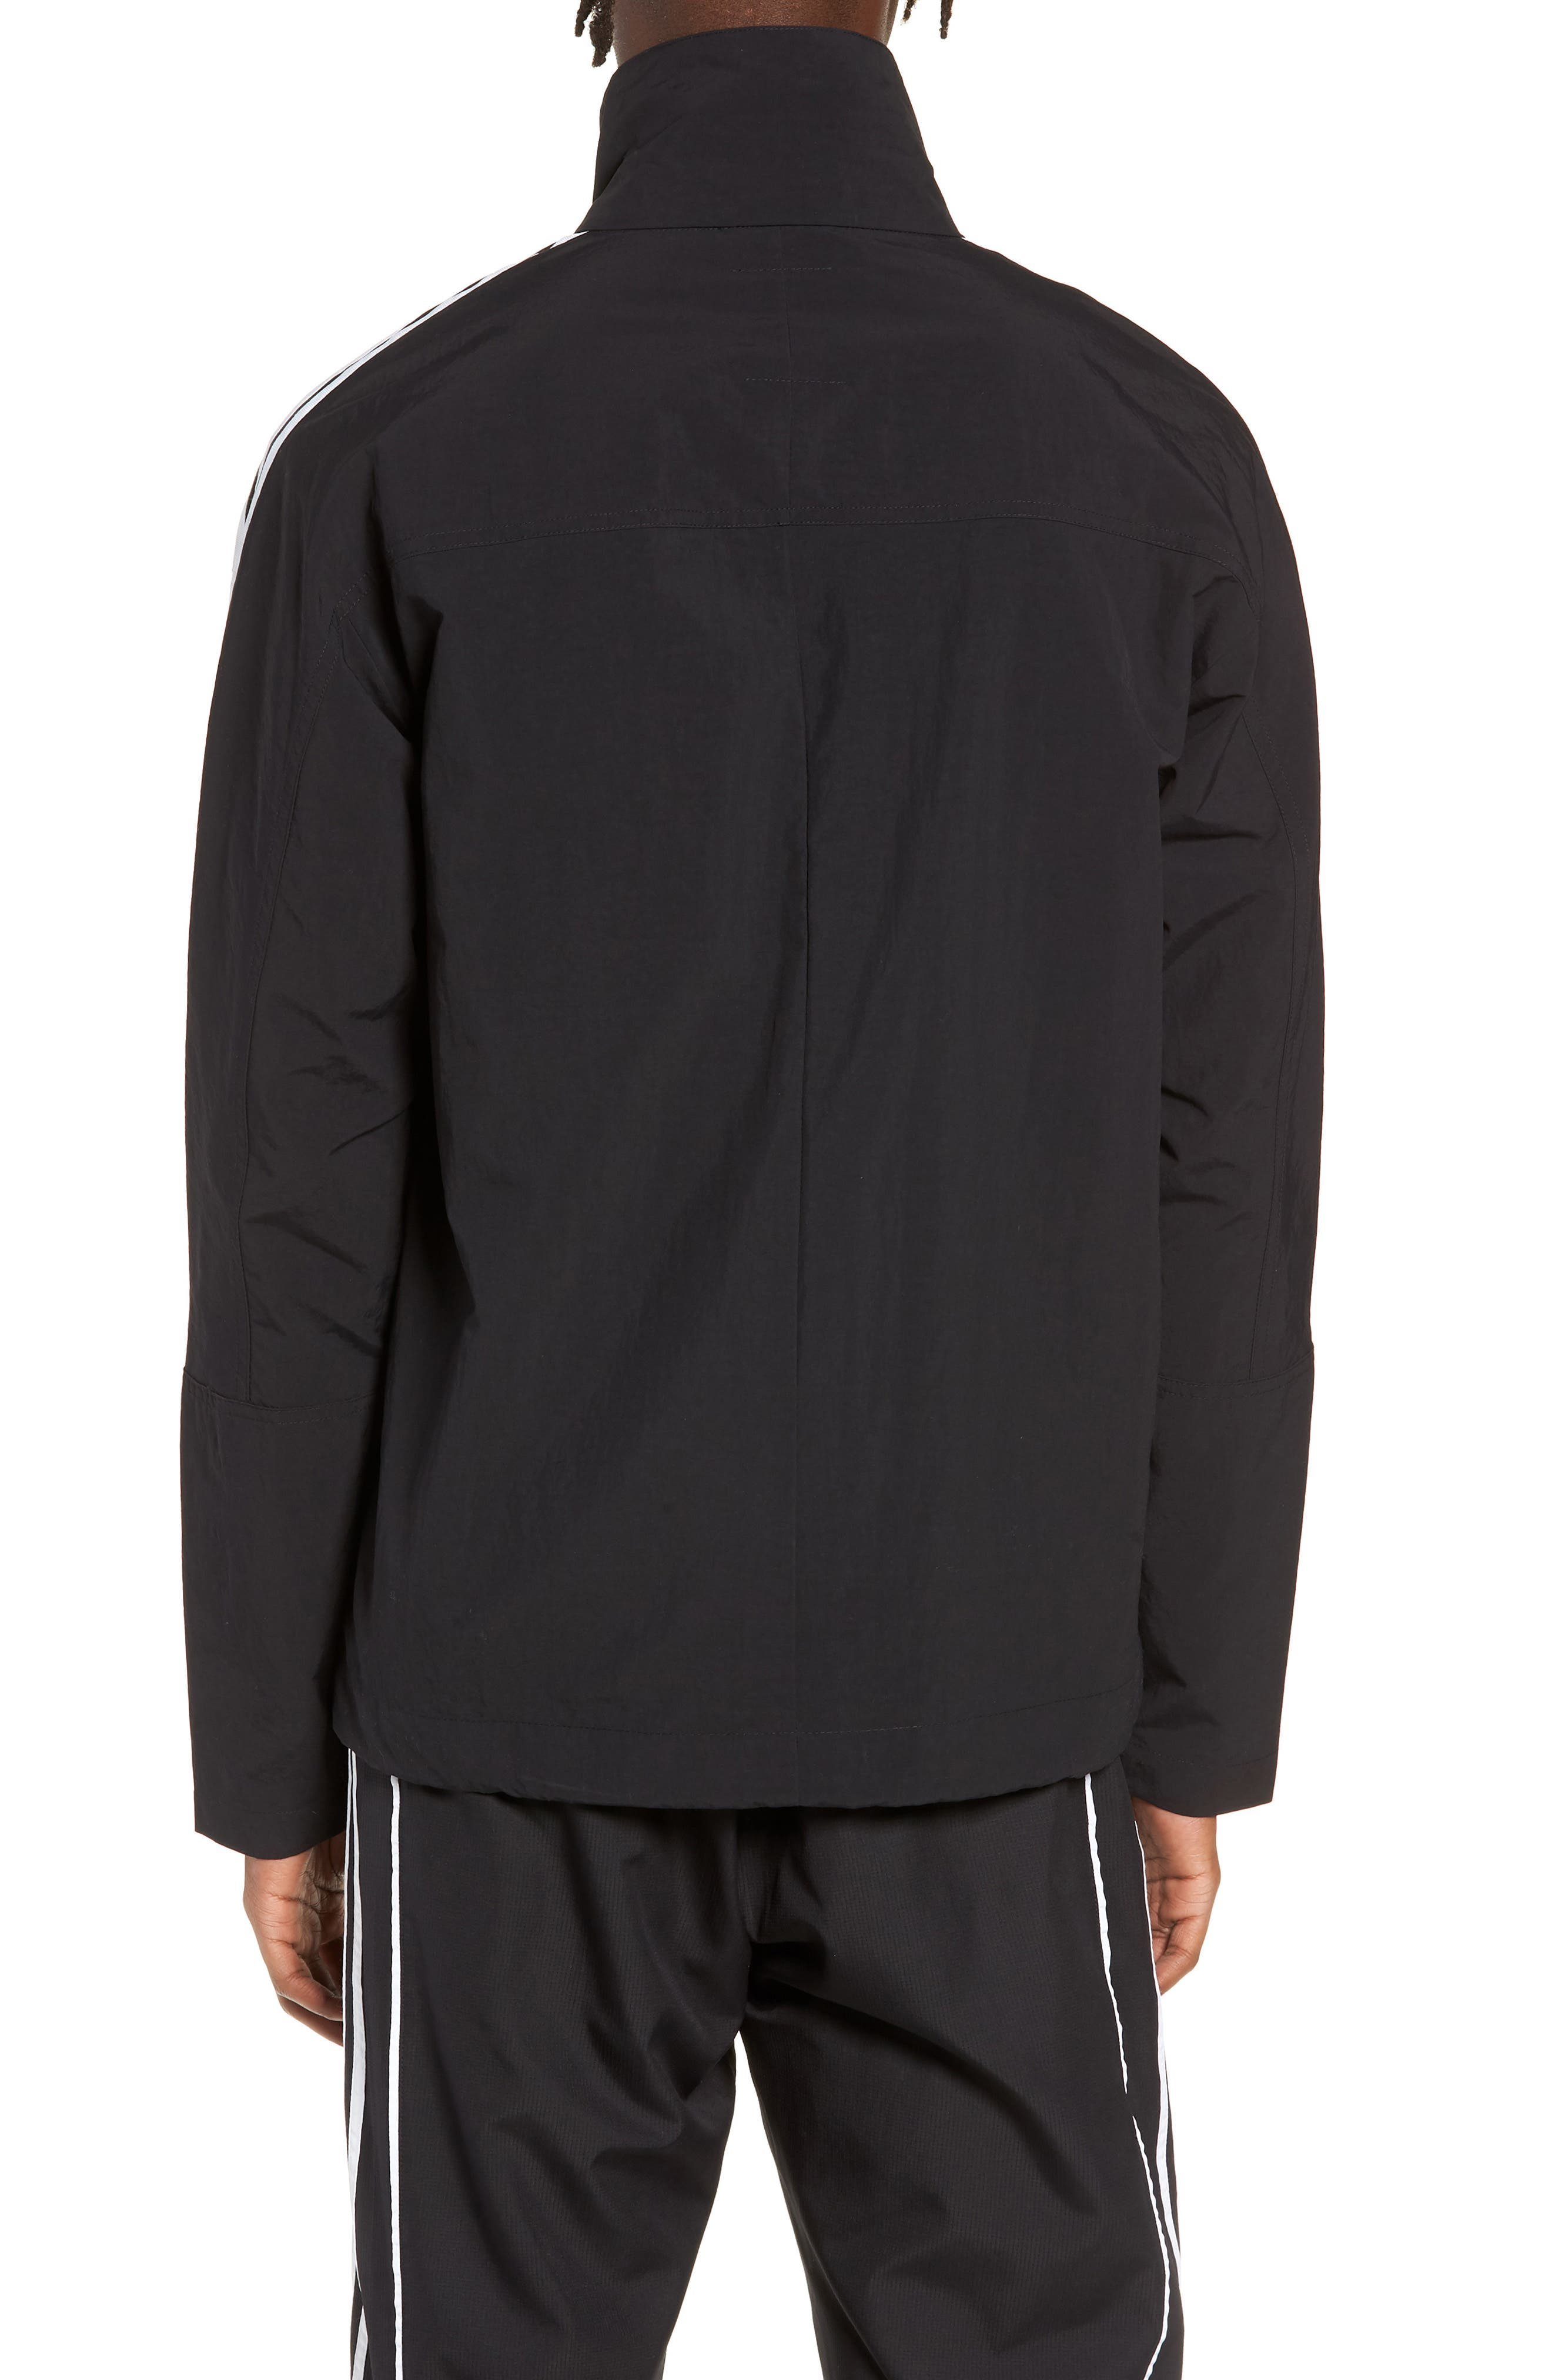 NMD Track Jacket,                             Alternate thumbnail 2, color,                             001